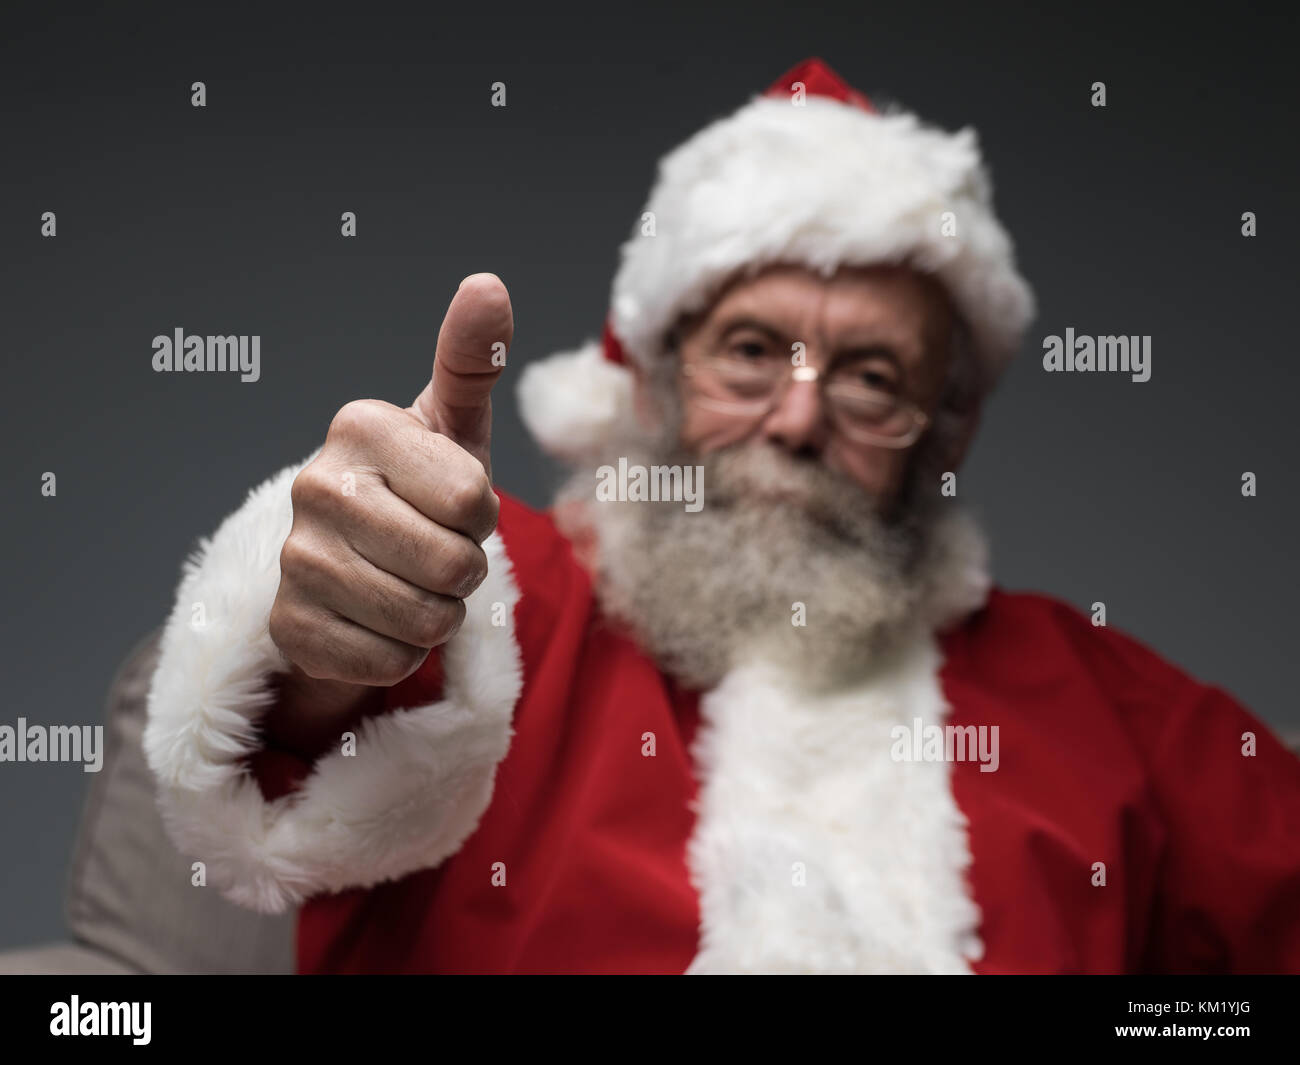 Cheerful Santa Claus giving a thumbs up, happiness and success concept - Stock Image